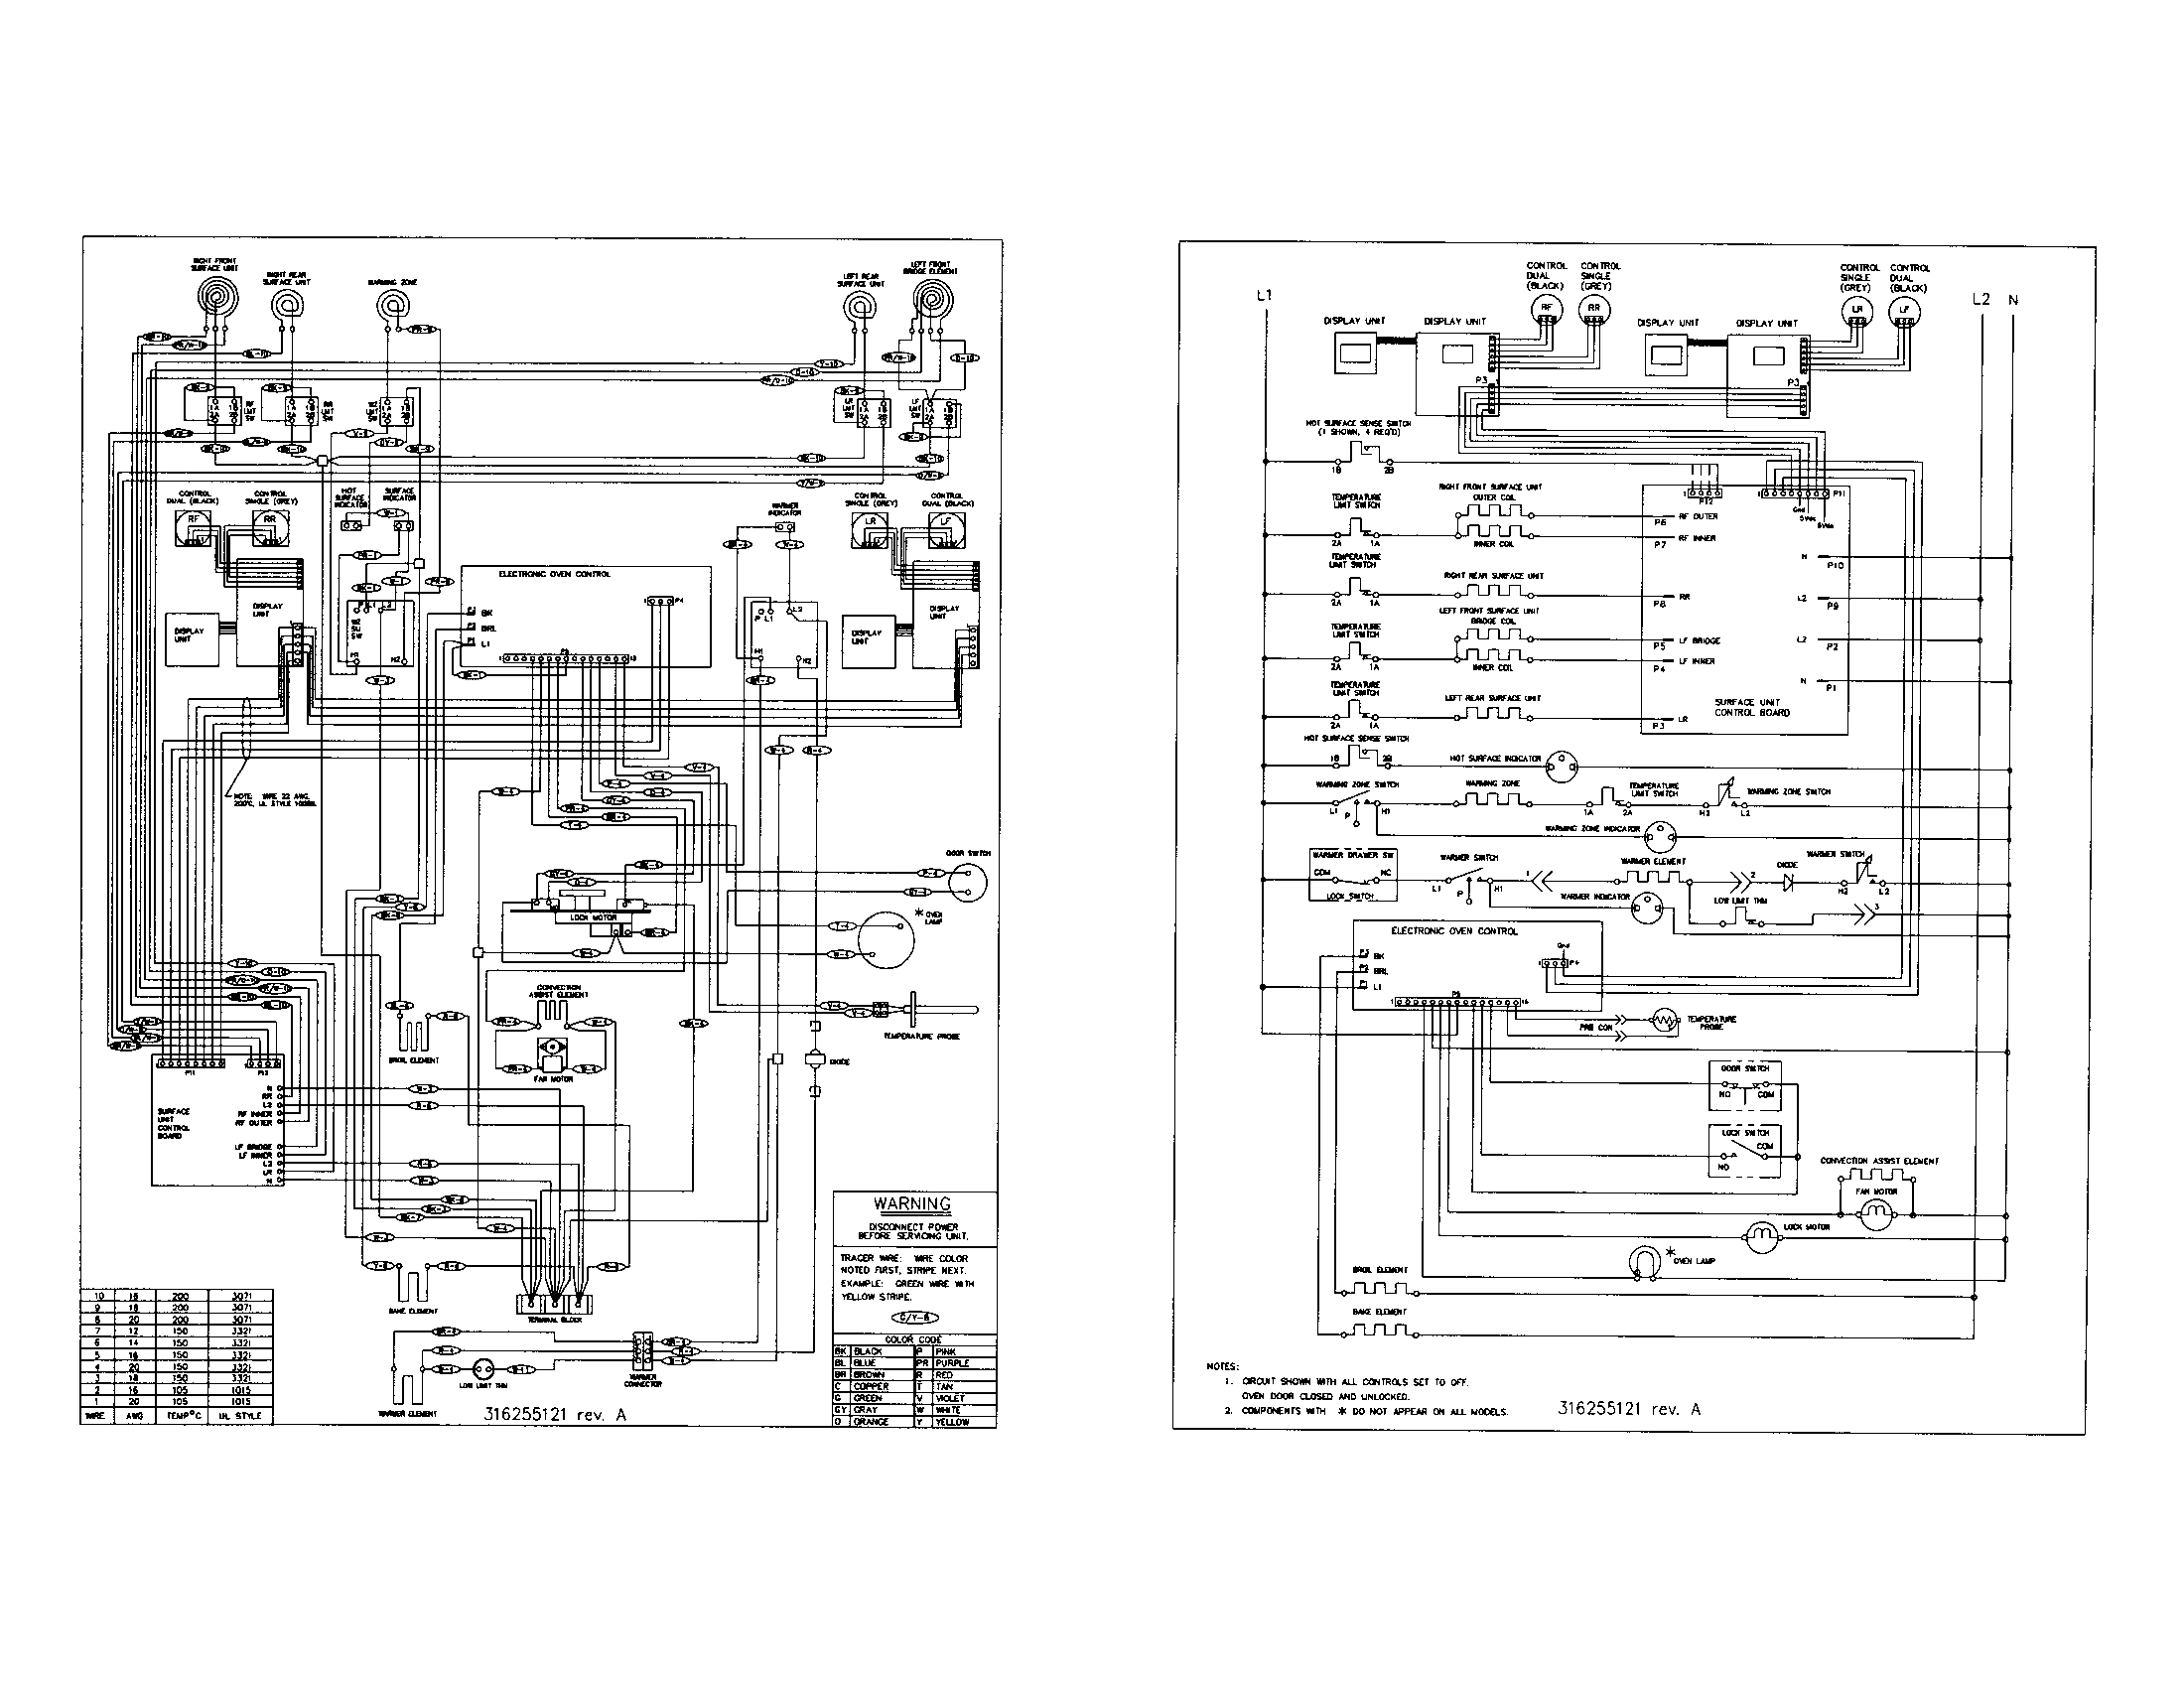 Wiring Diagram Ac Split Duct